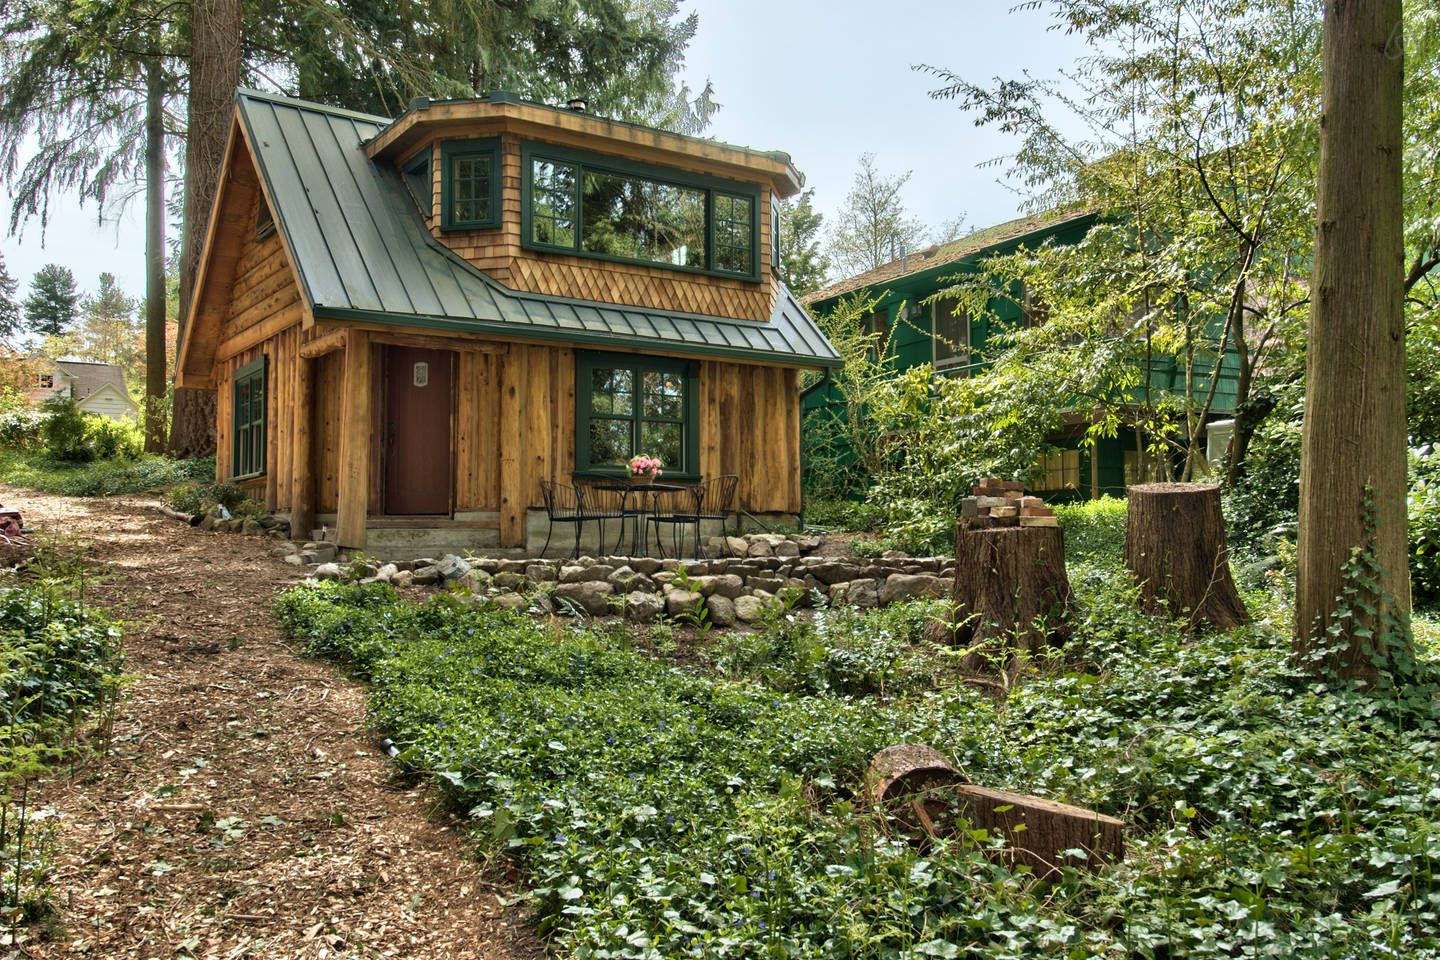 in cabins pittsburgh of cabin university sale for wiki state washington img log wikipedia